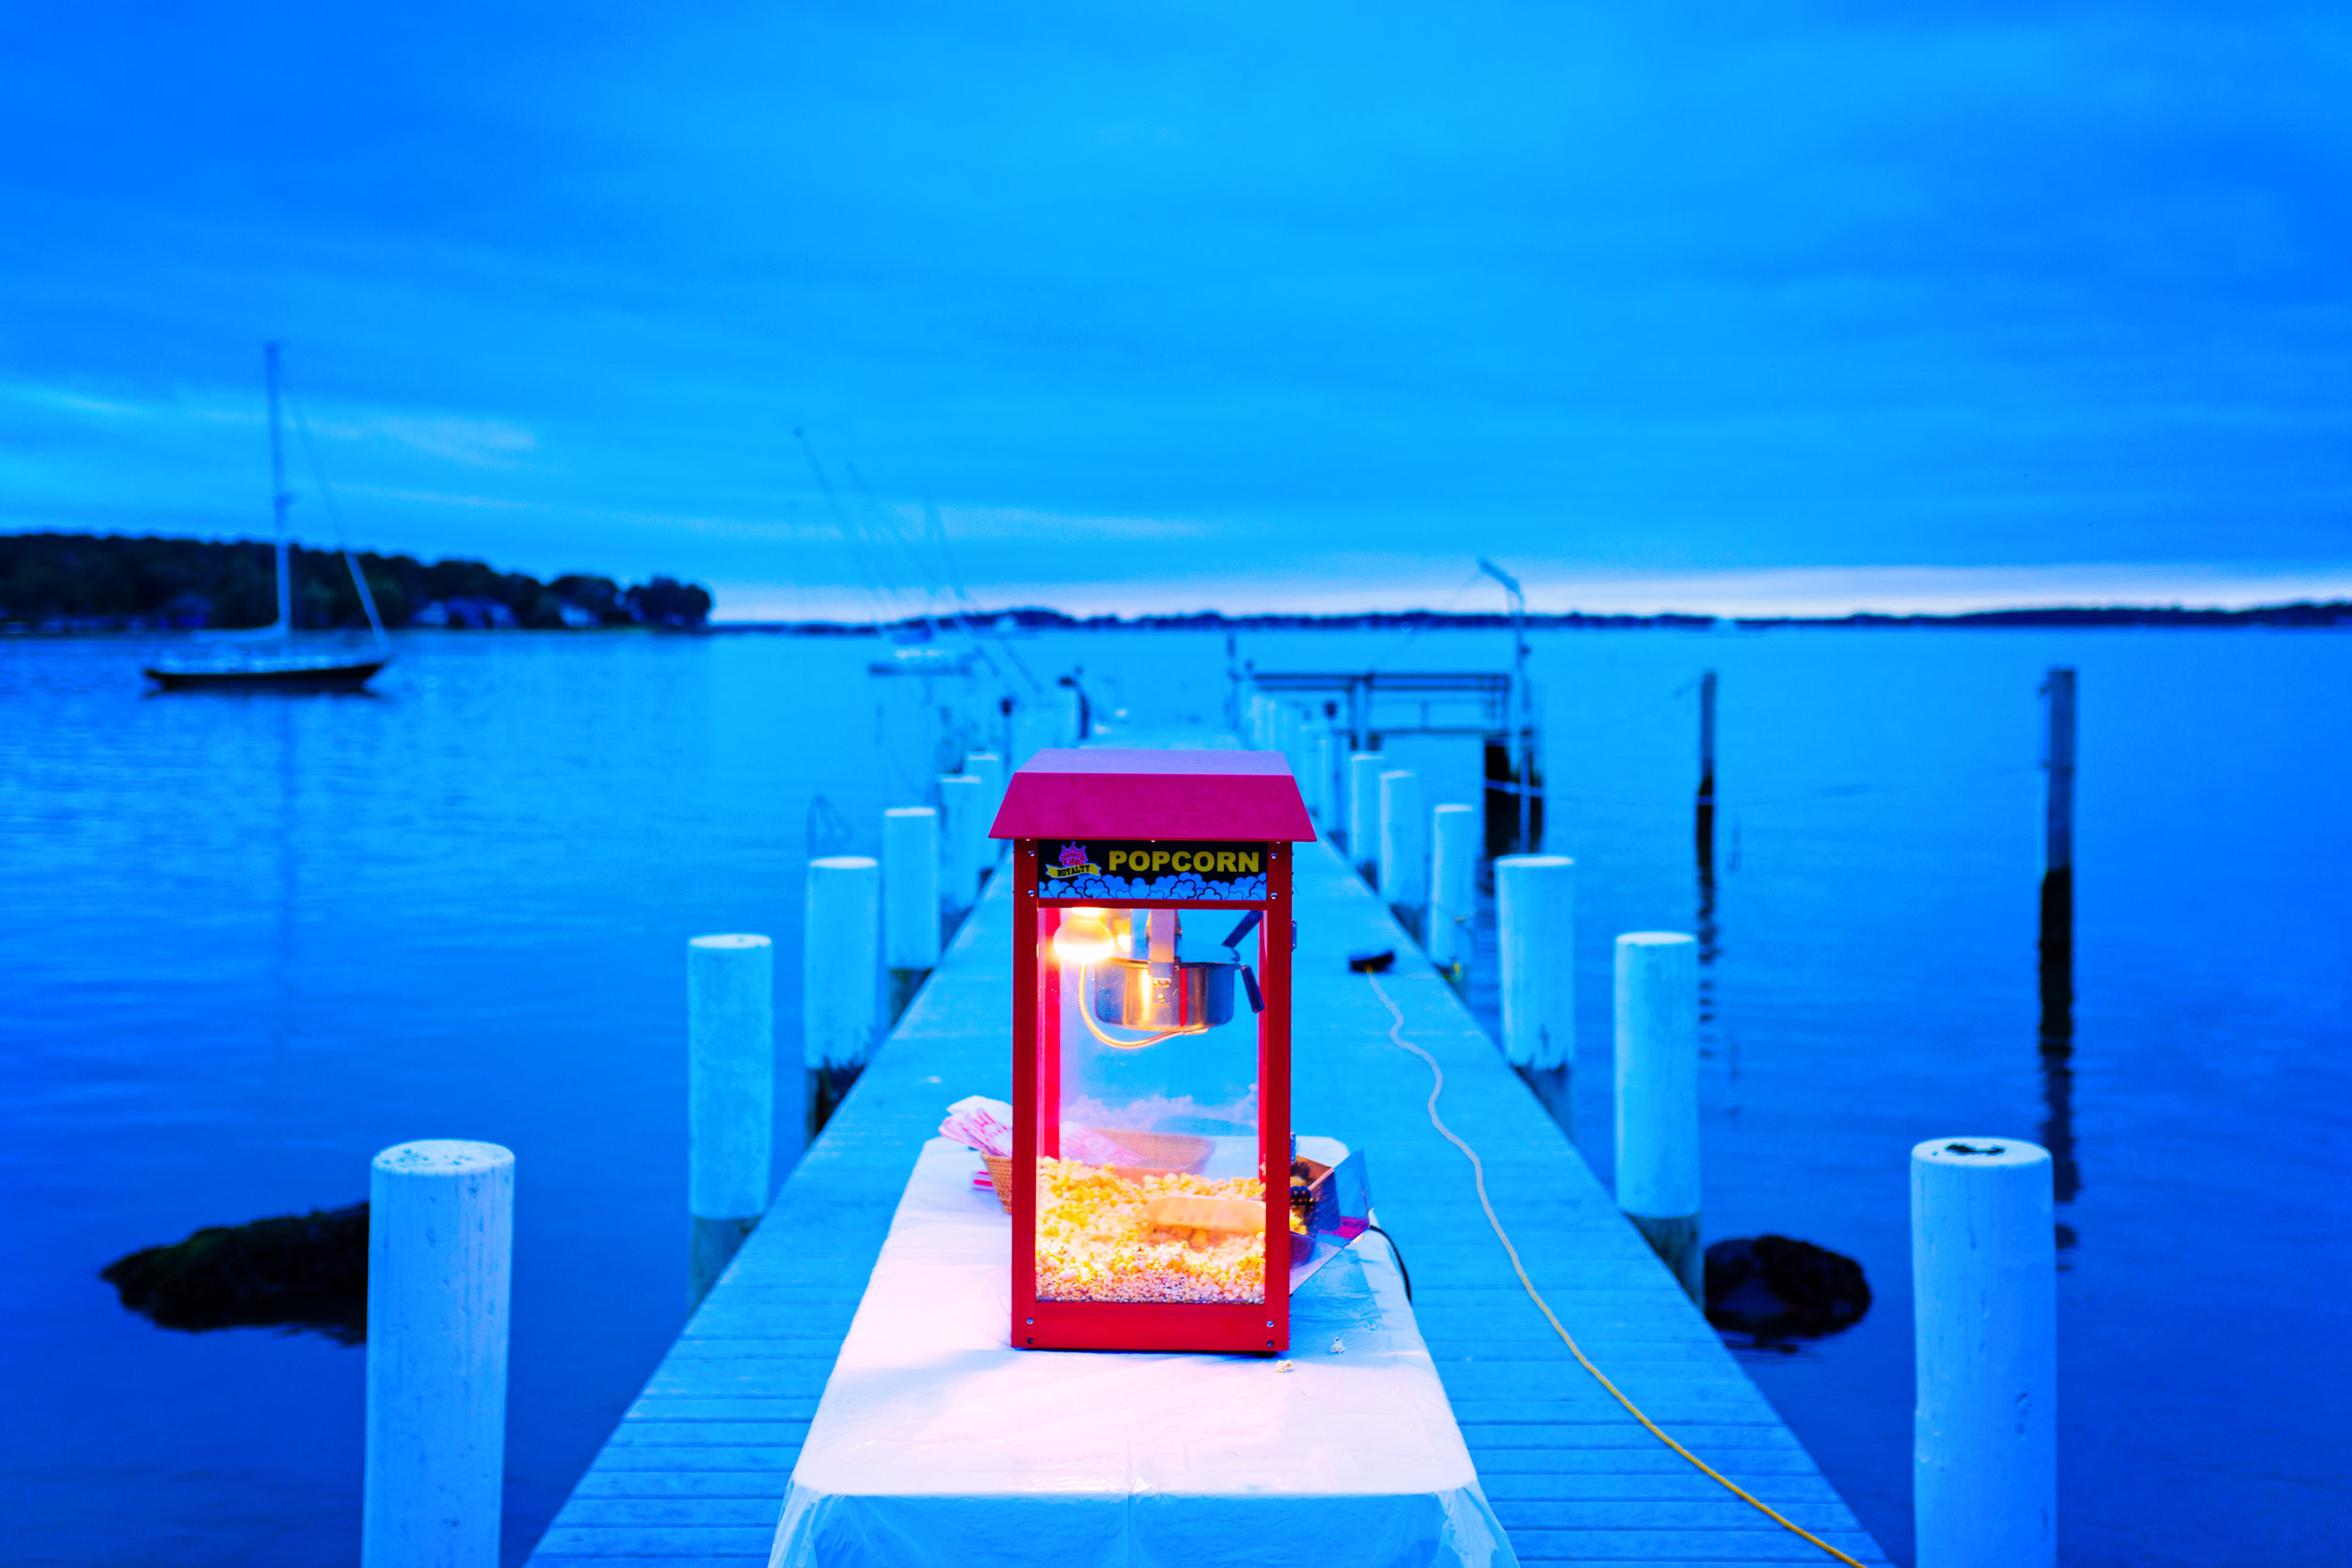 A cloudy, blue sunset and a red popcorn maker at the Modica family home on Shelter Island, NY.Charles and Lisa Modica hosted a post-wedding party for Sarah Cahill and Jack DaSilva on October 2, 2016.